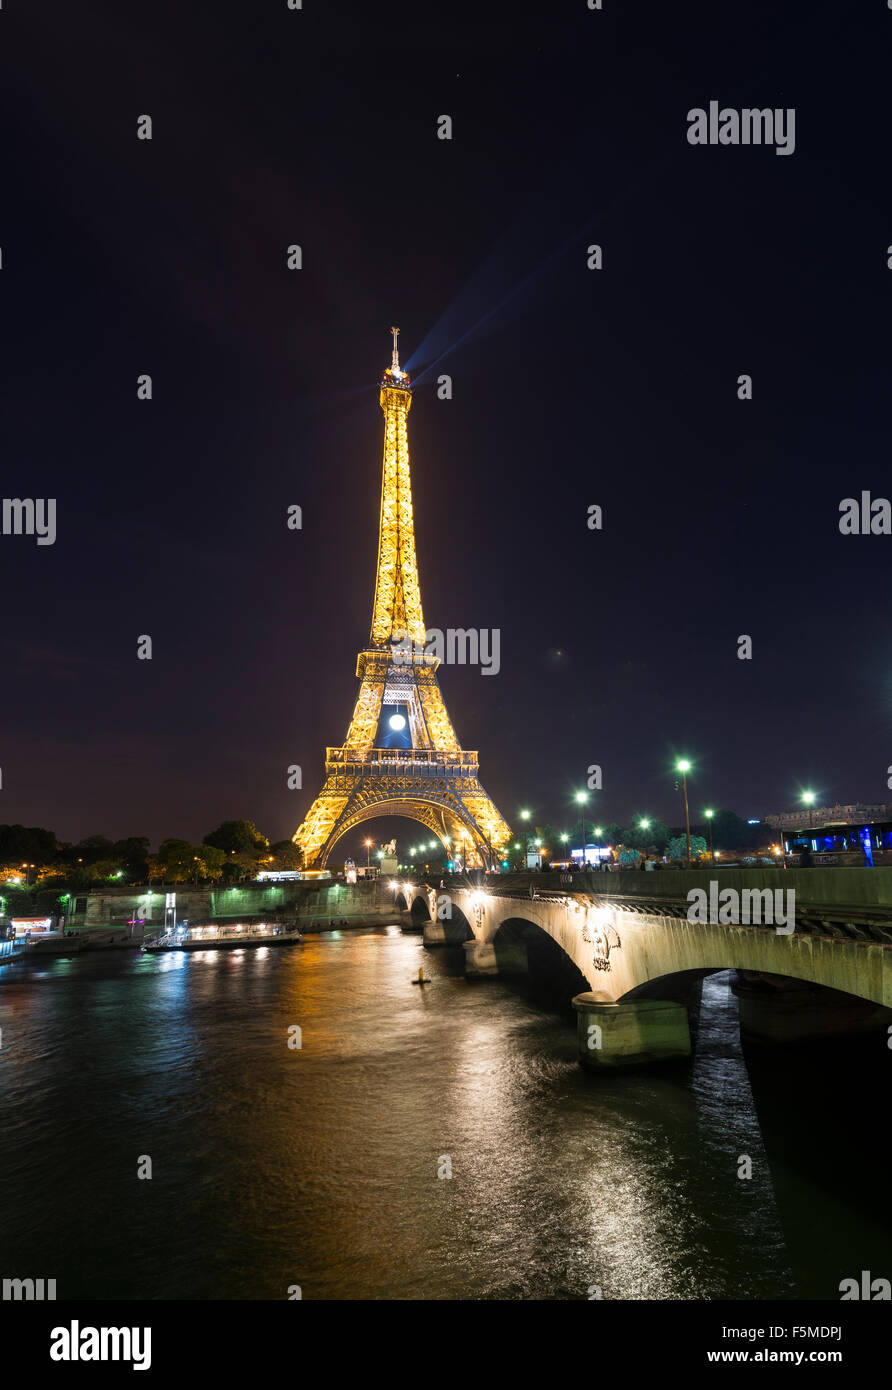 Illuminated Eiffel Tower at night, boats on River Seine, tour Eiffel, Paris, Ile-de-France, France - Stock Image